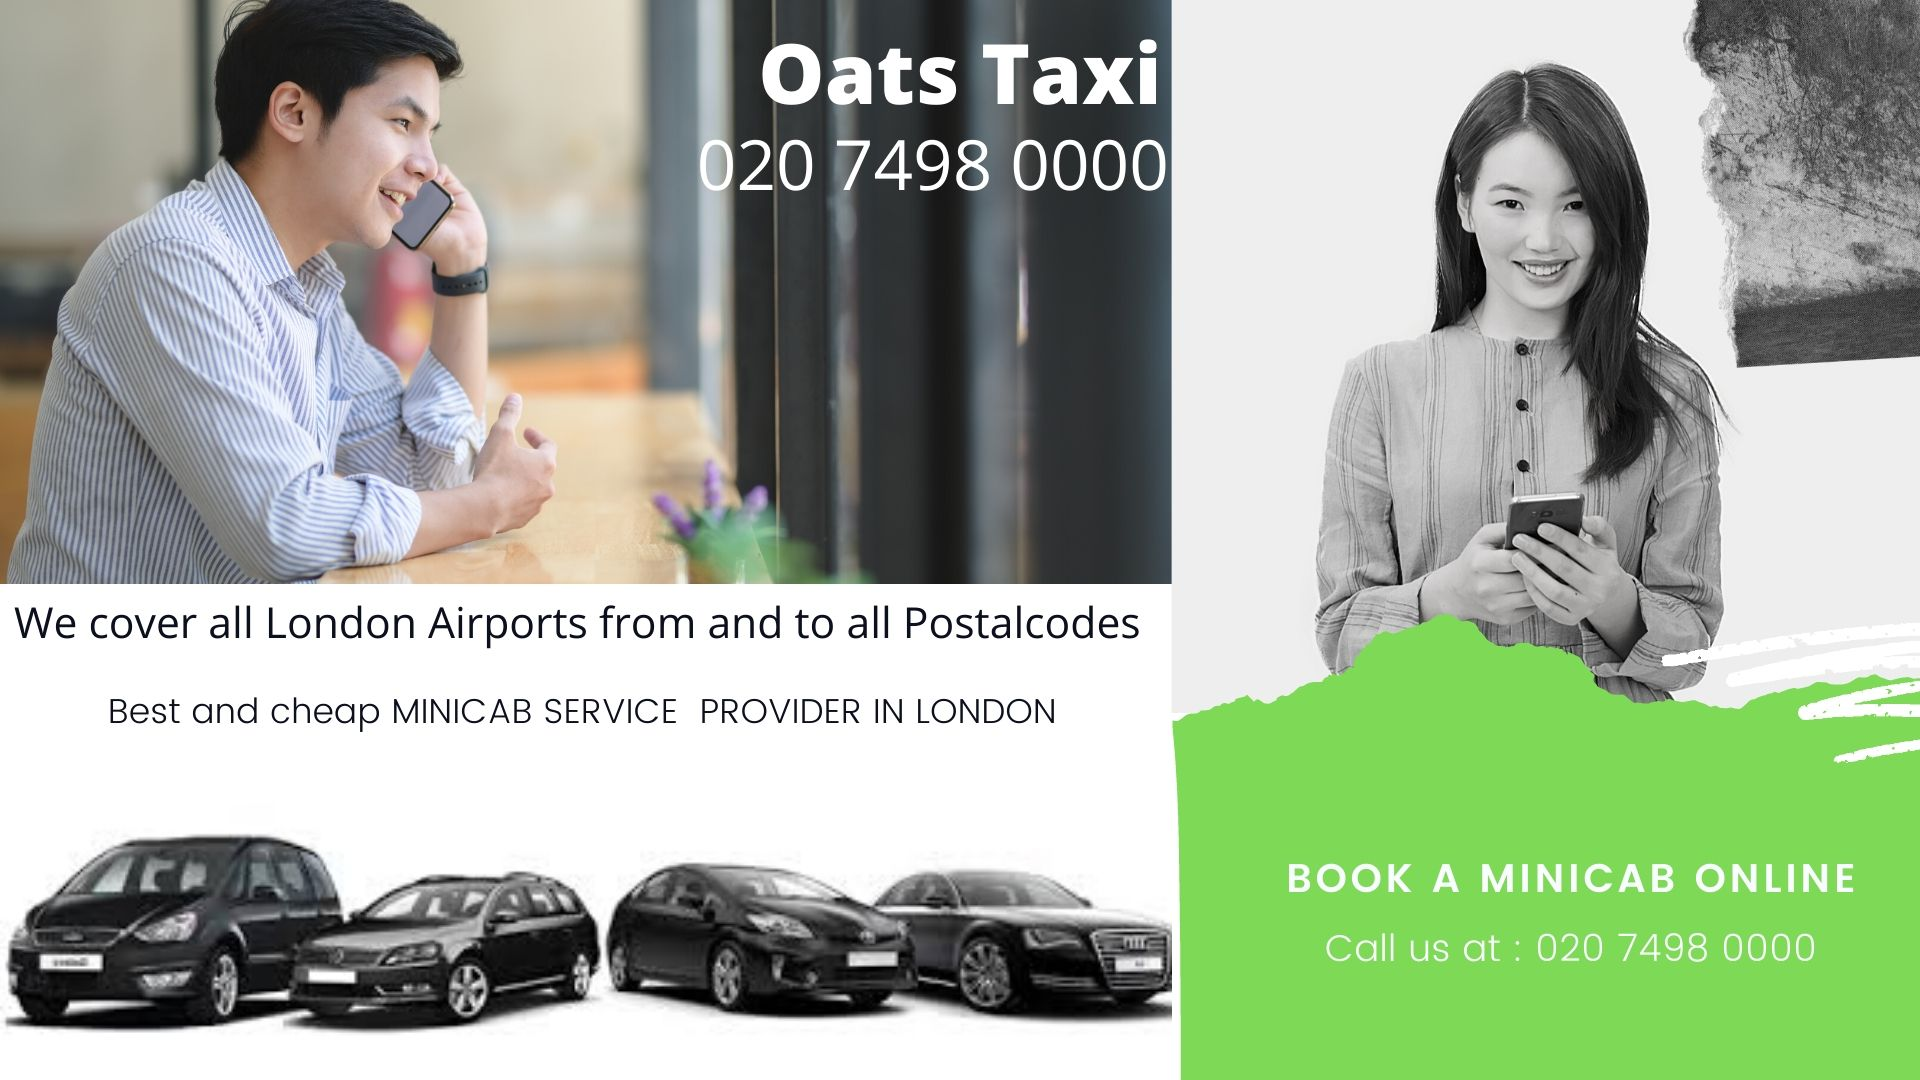 Minicab Office Near GOWRIE ROAD, Battersea SW11, Minicab From Battersea SW11 To Gatwick Airport